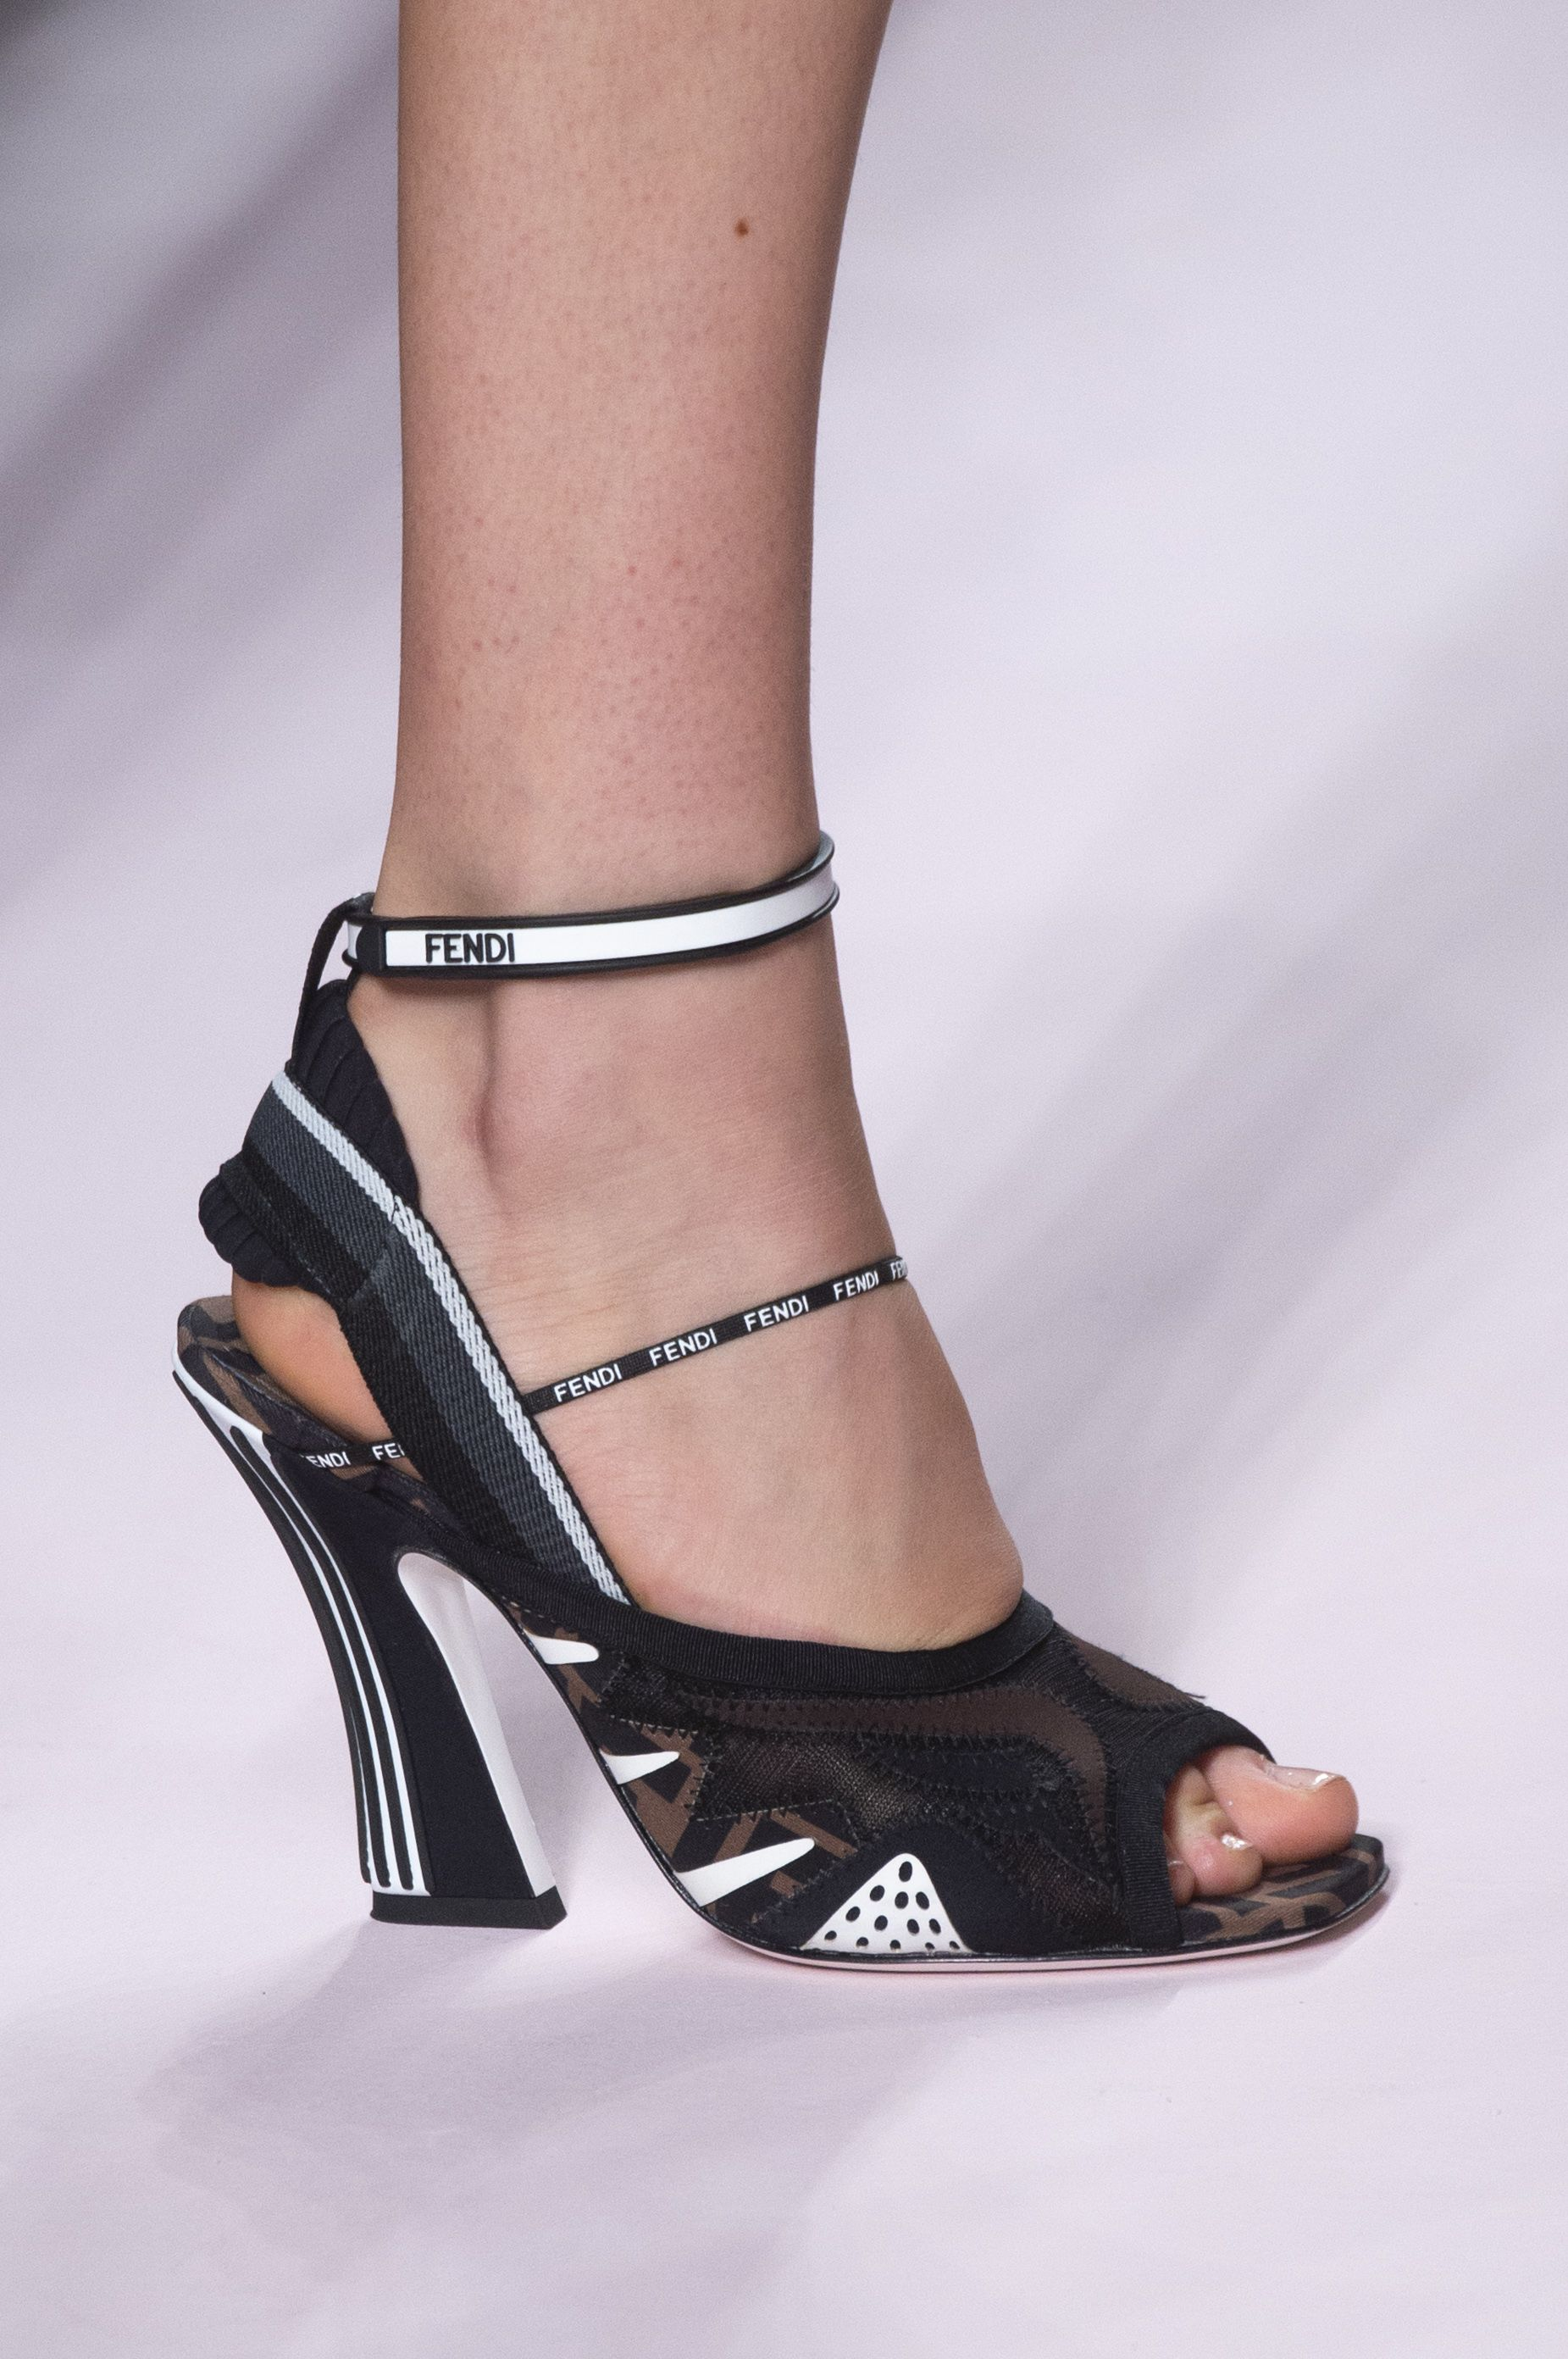 de0217fab80 Best Spring 2019 Runway Shoes - Spring 2019 Shoe Trends at Fashion Week